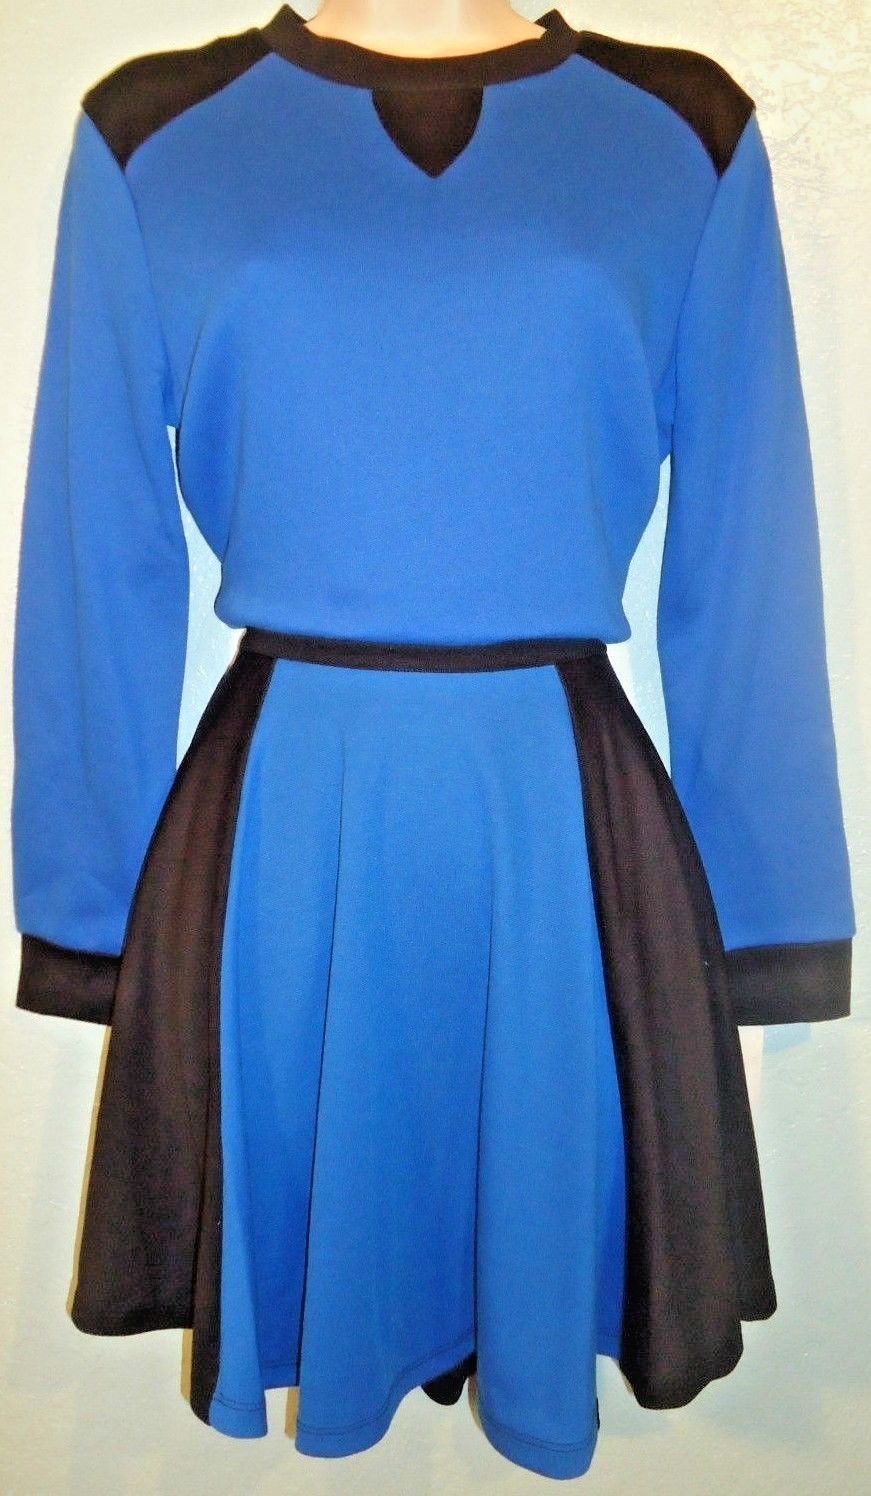 M STYLE LAB - 2 PIECE - BLUE - BALLET - OUTFIT - TOP - SKIRT - NEW - S - MACY'S